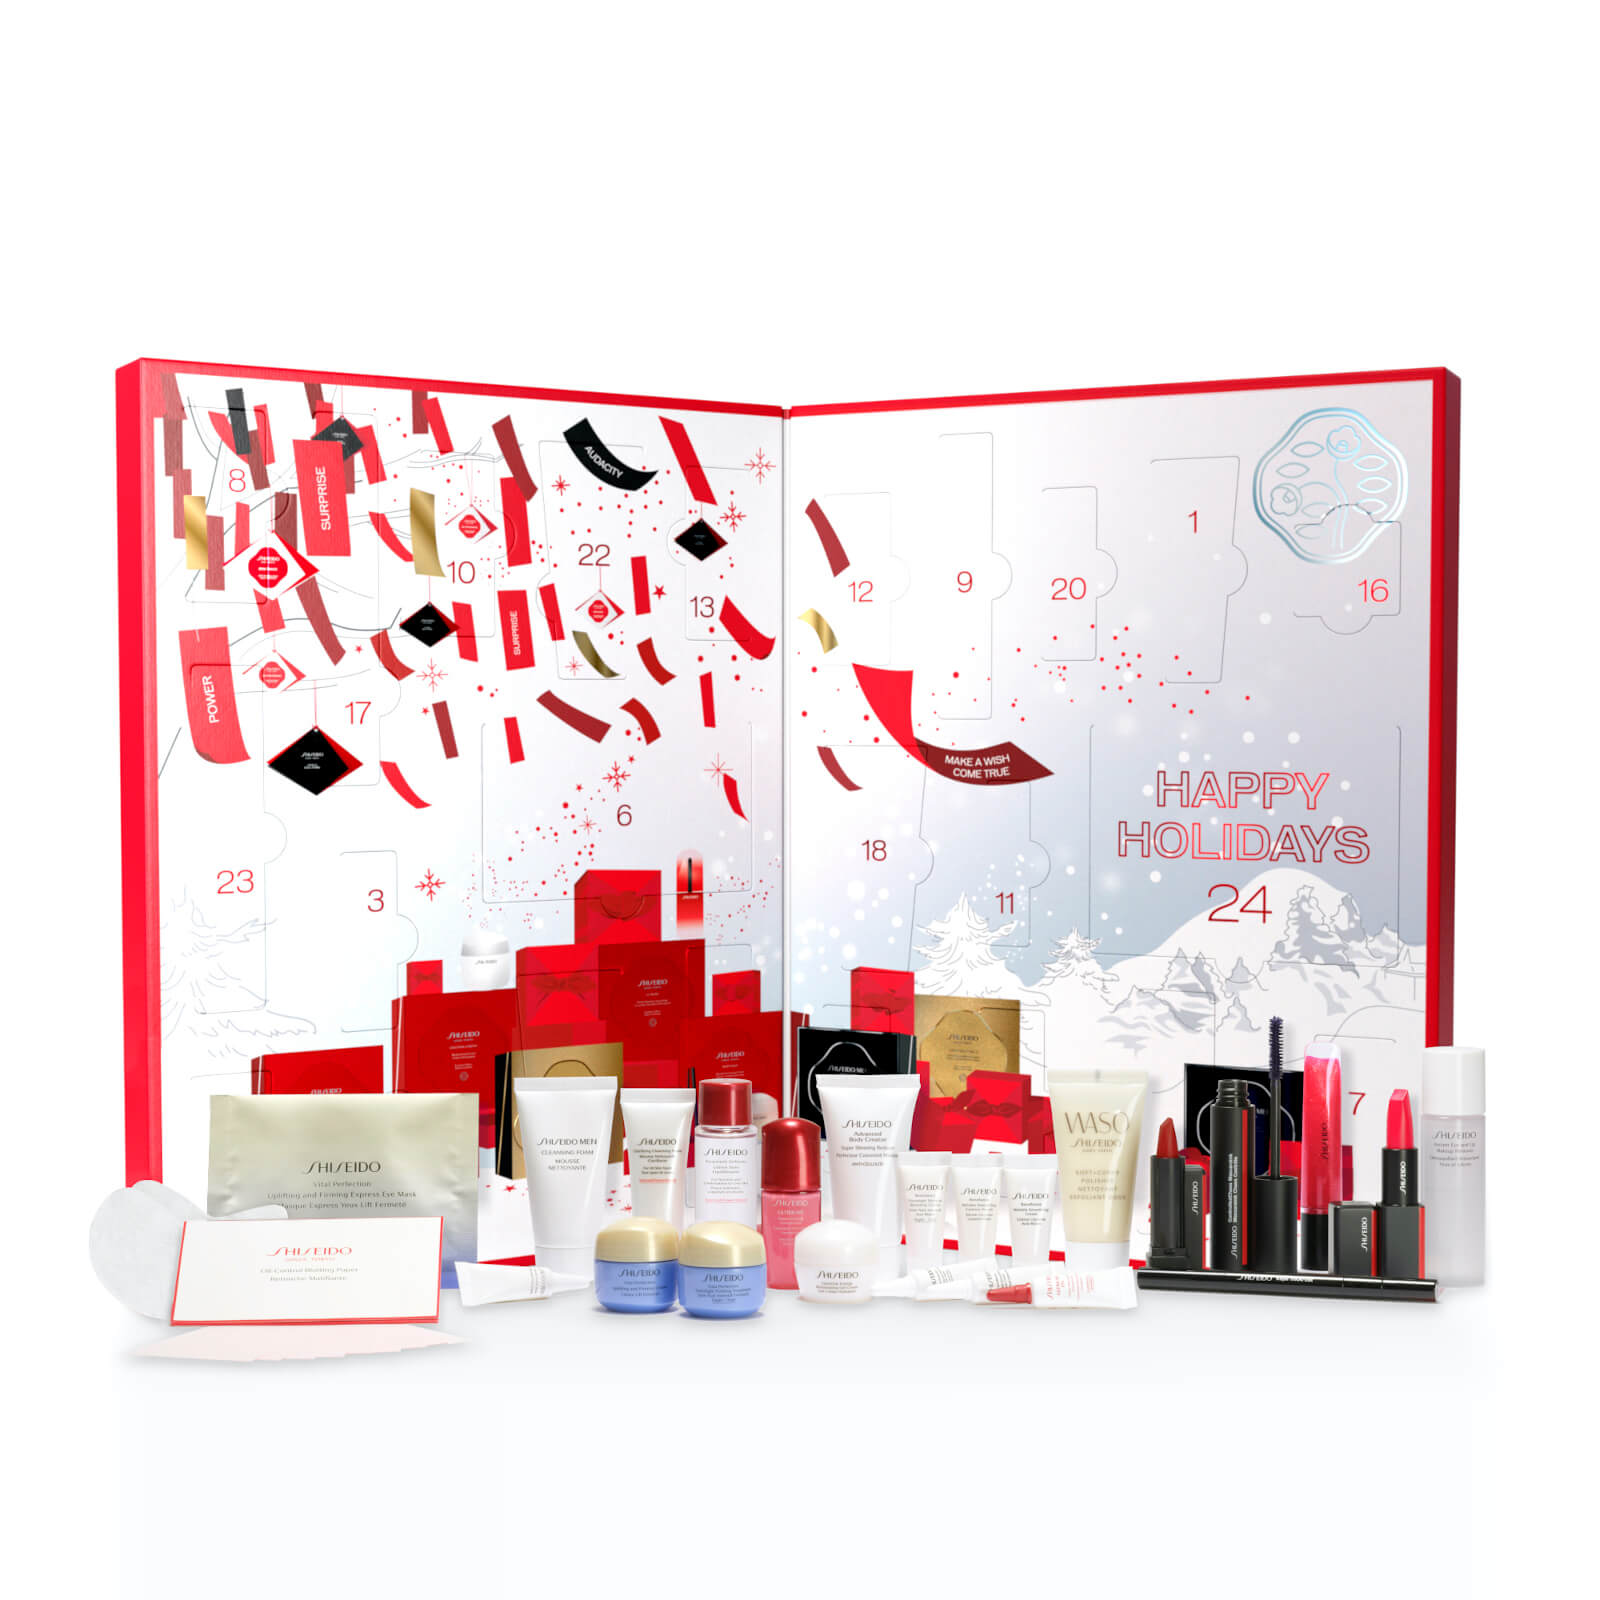 Shiseido Adventskalender 2020 Inhalt